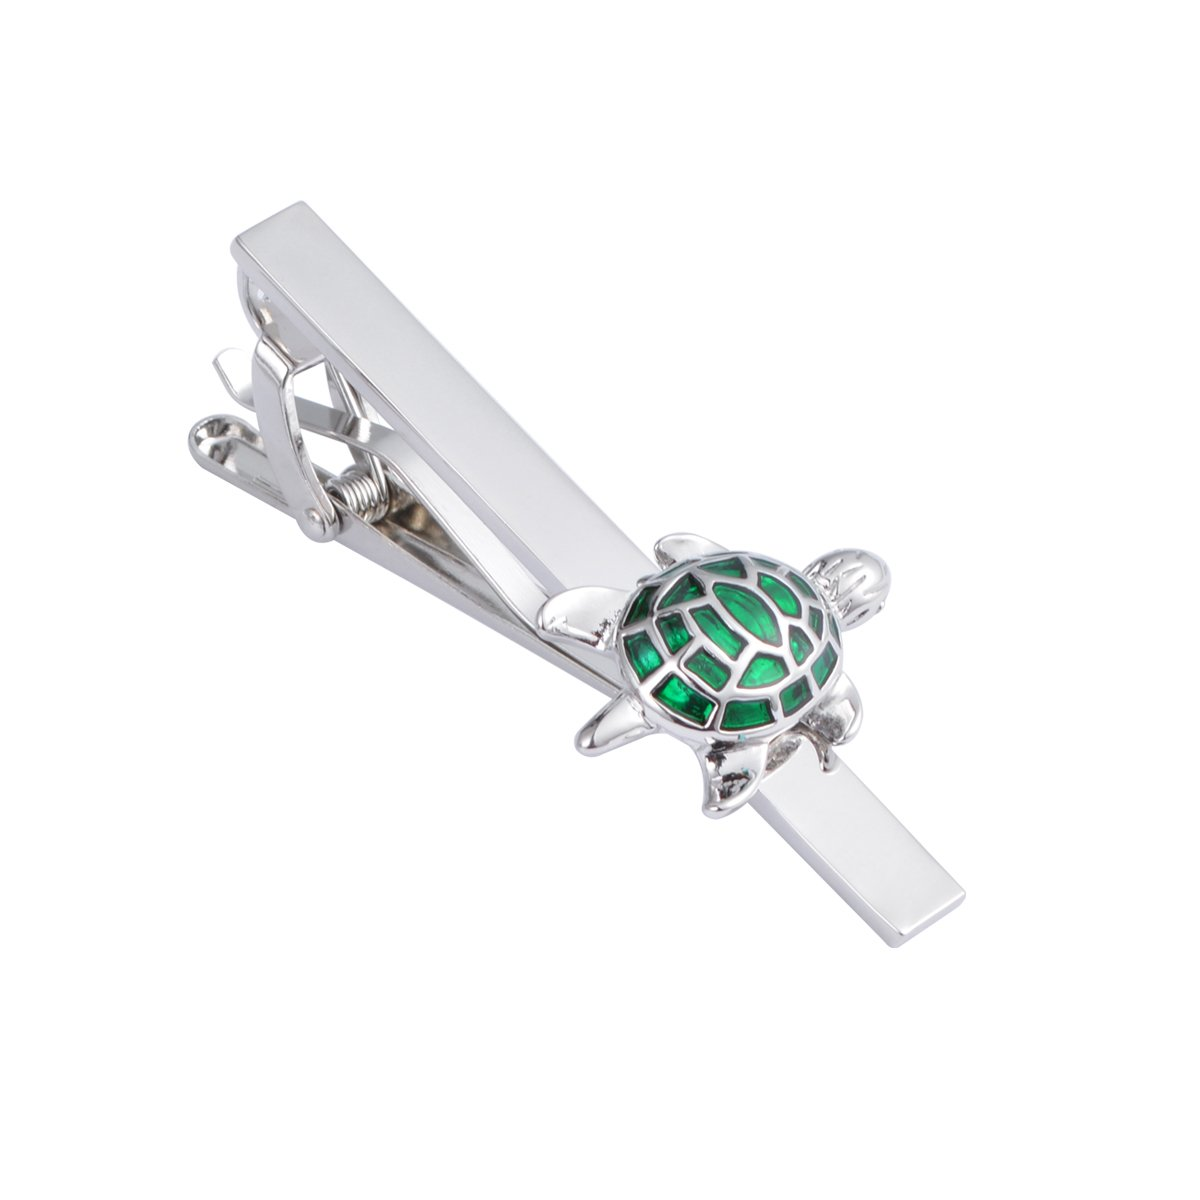 JAOPNZA Classic Cute Turtle Tie Clip Personalized Men's Tie Bar Clip Gift Set,Green